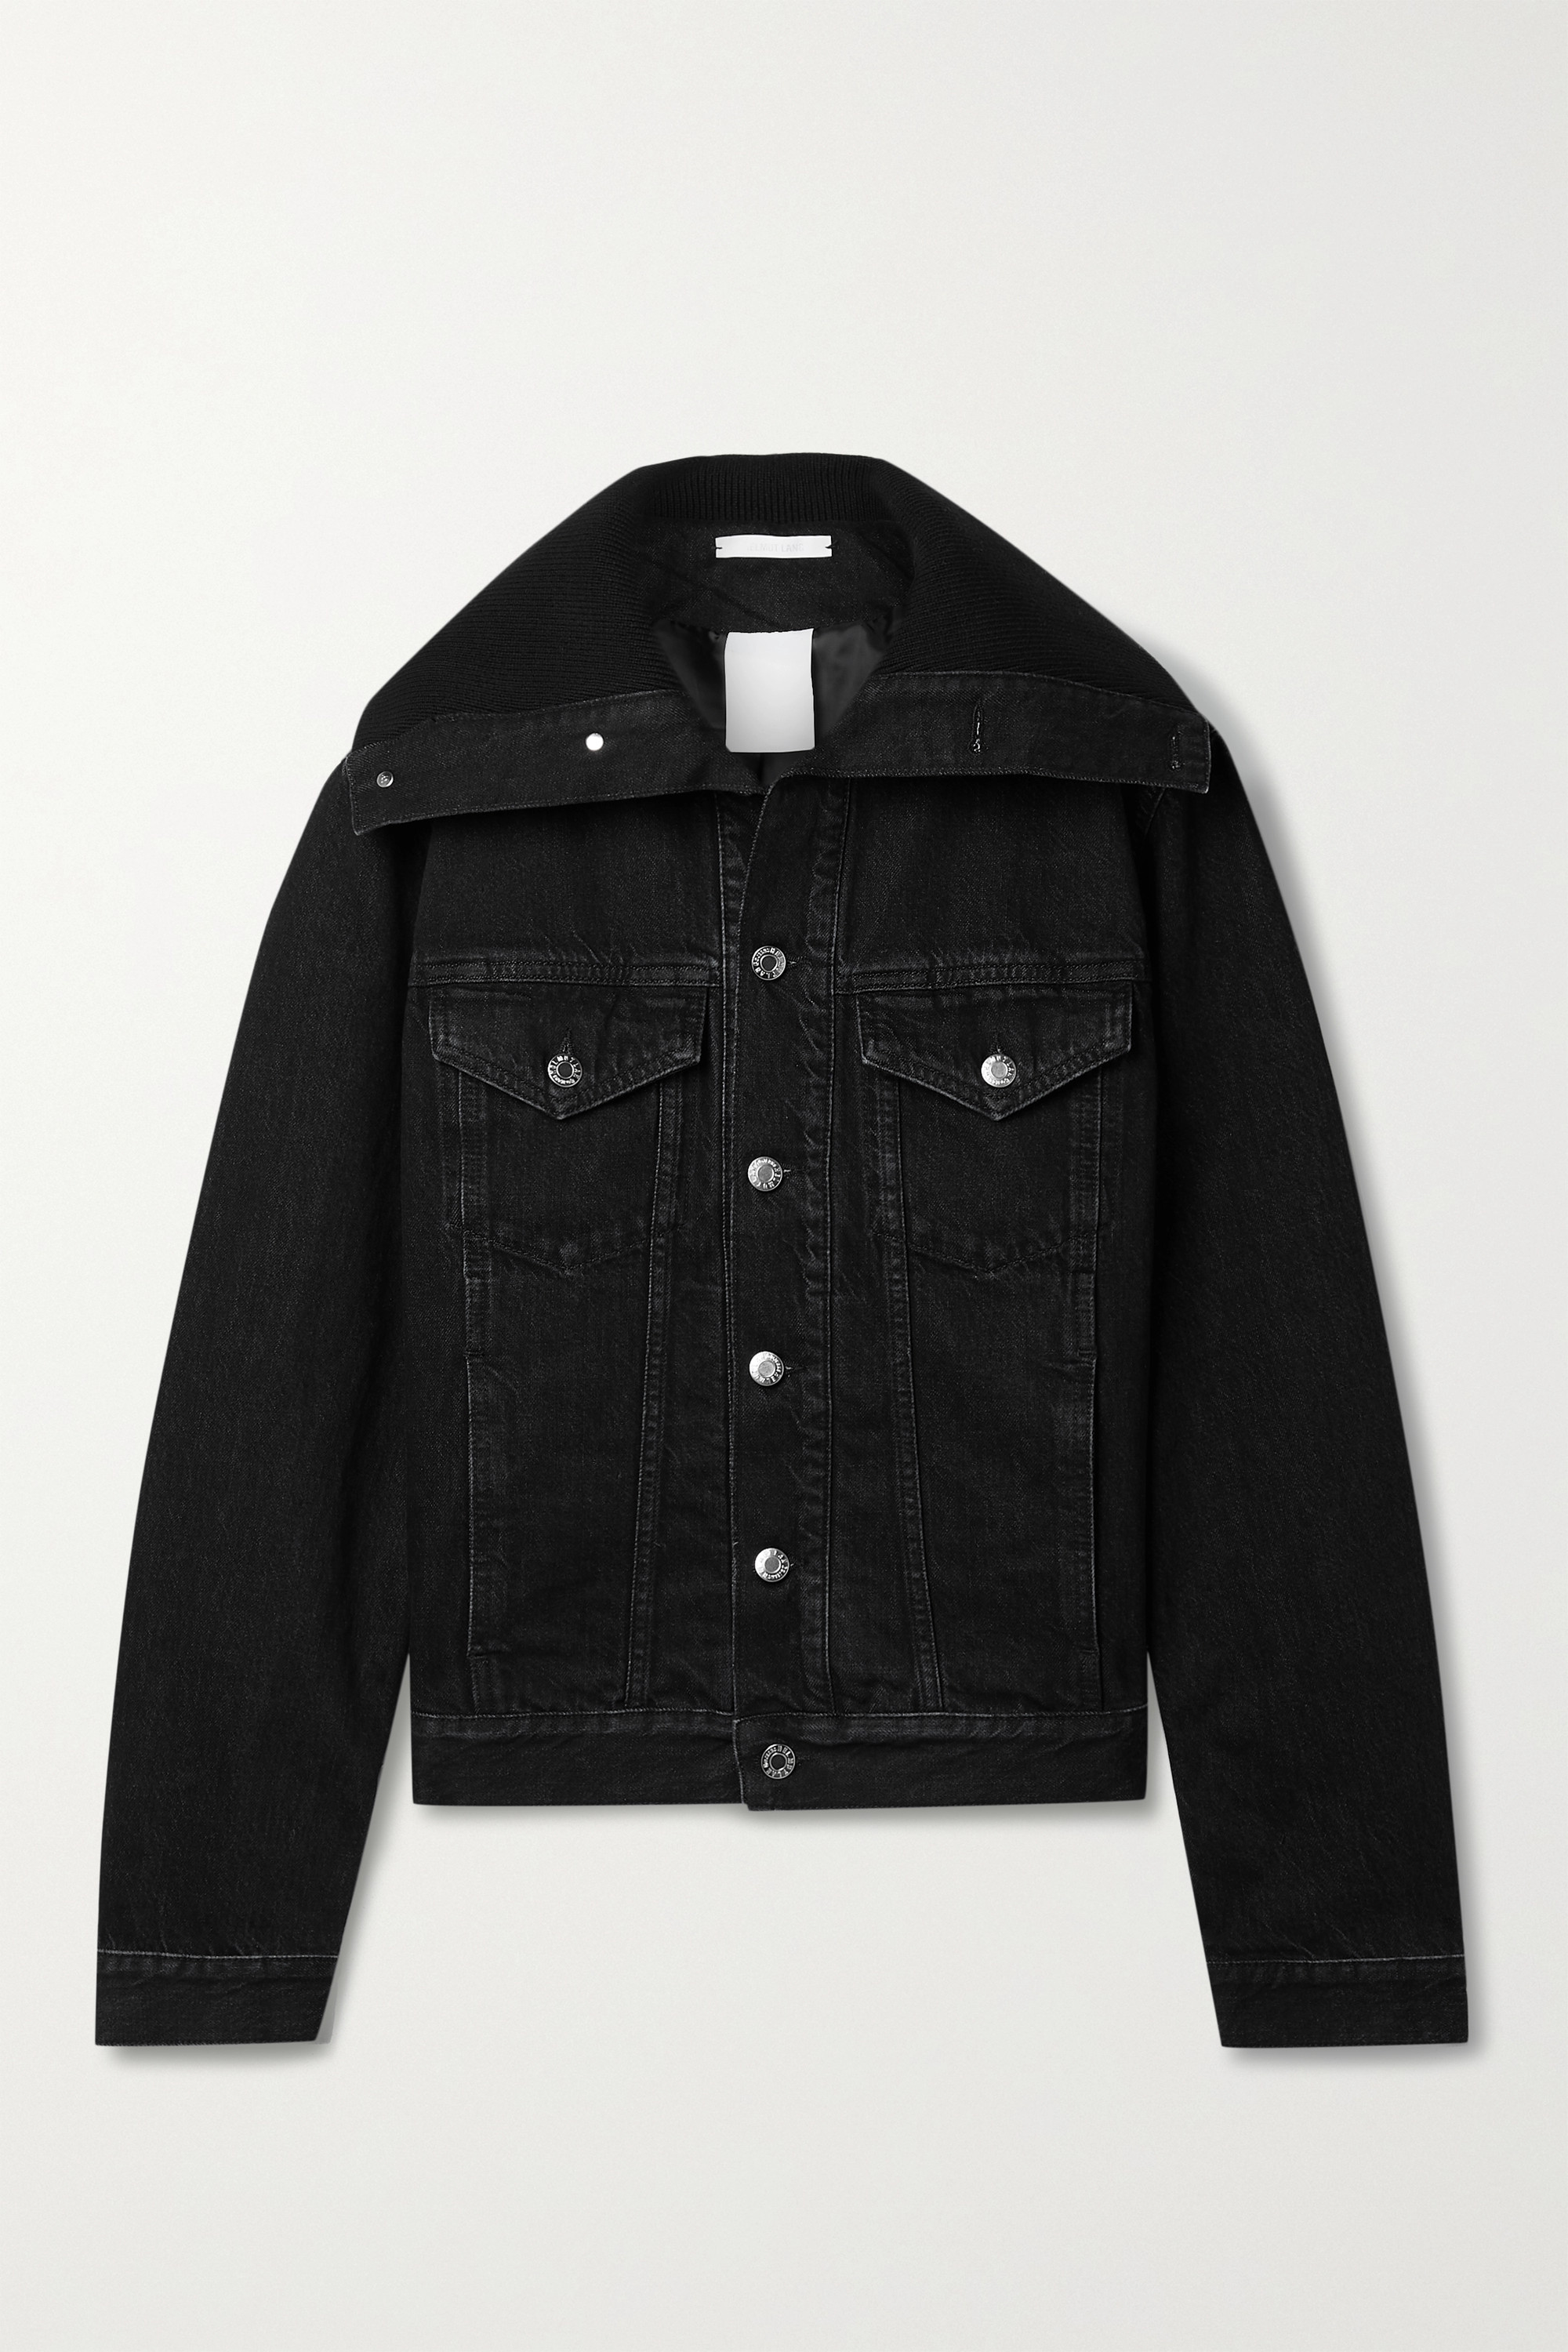 Helmut Lang RIBBED KNIT-TRIMMED DENIM JACKET